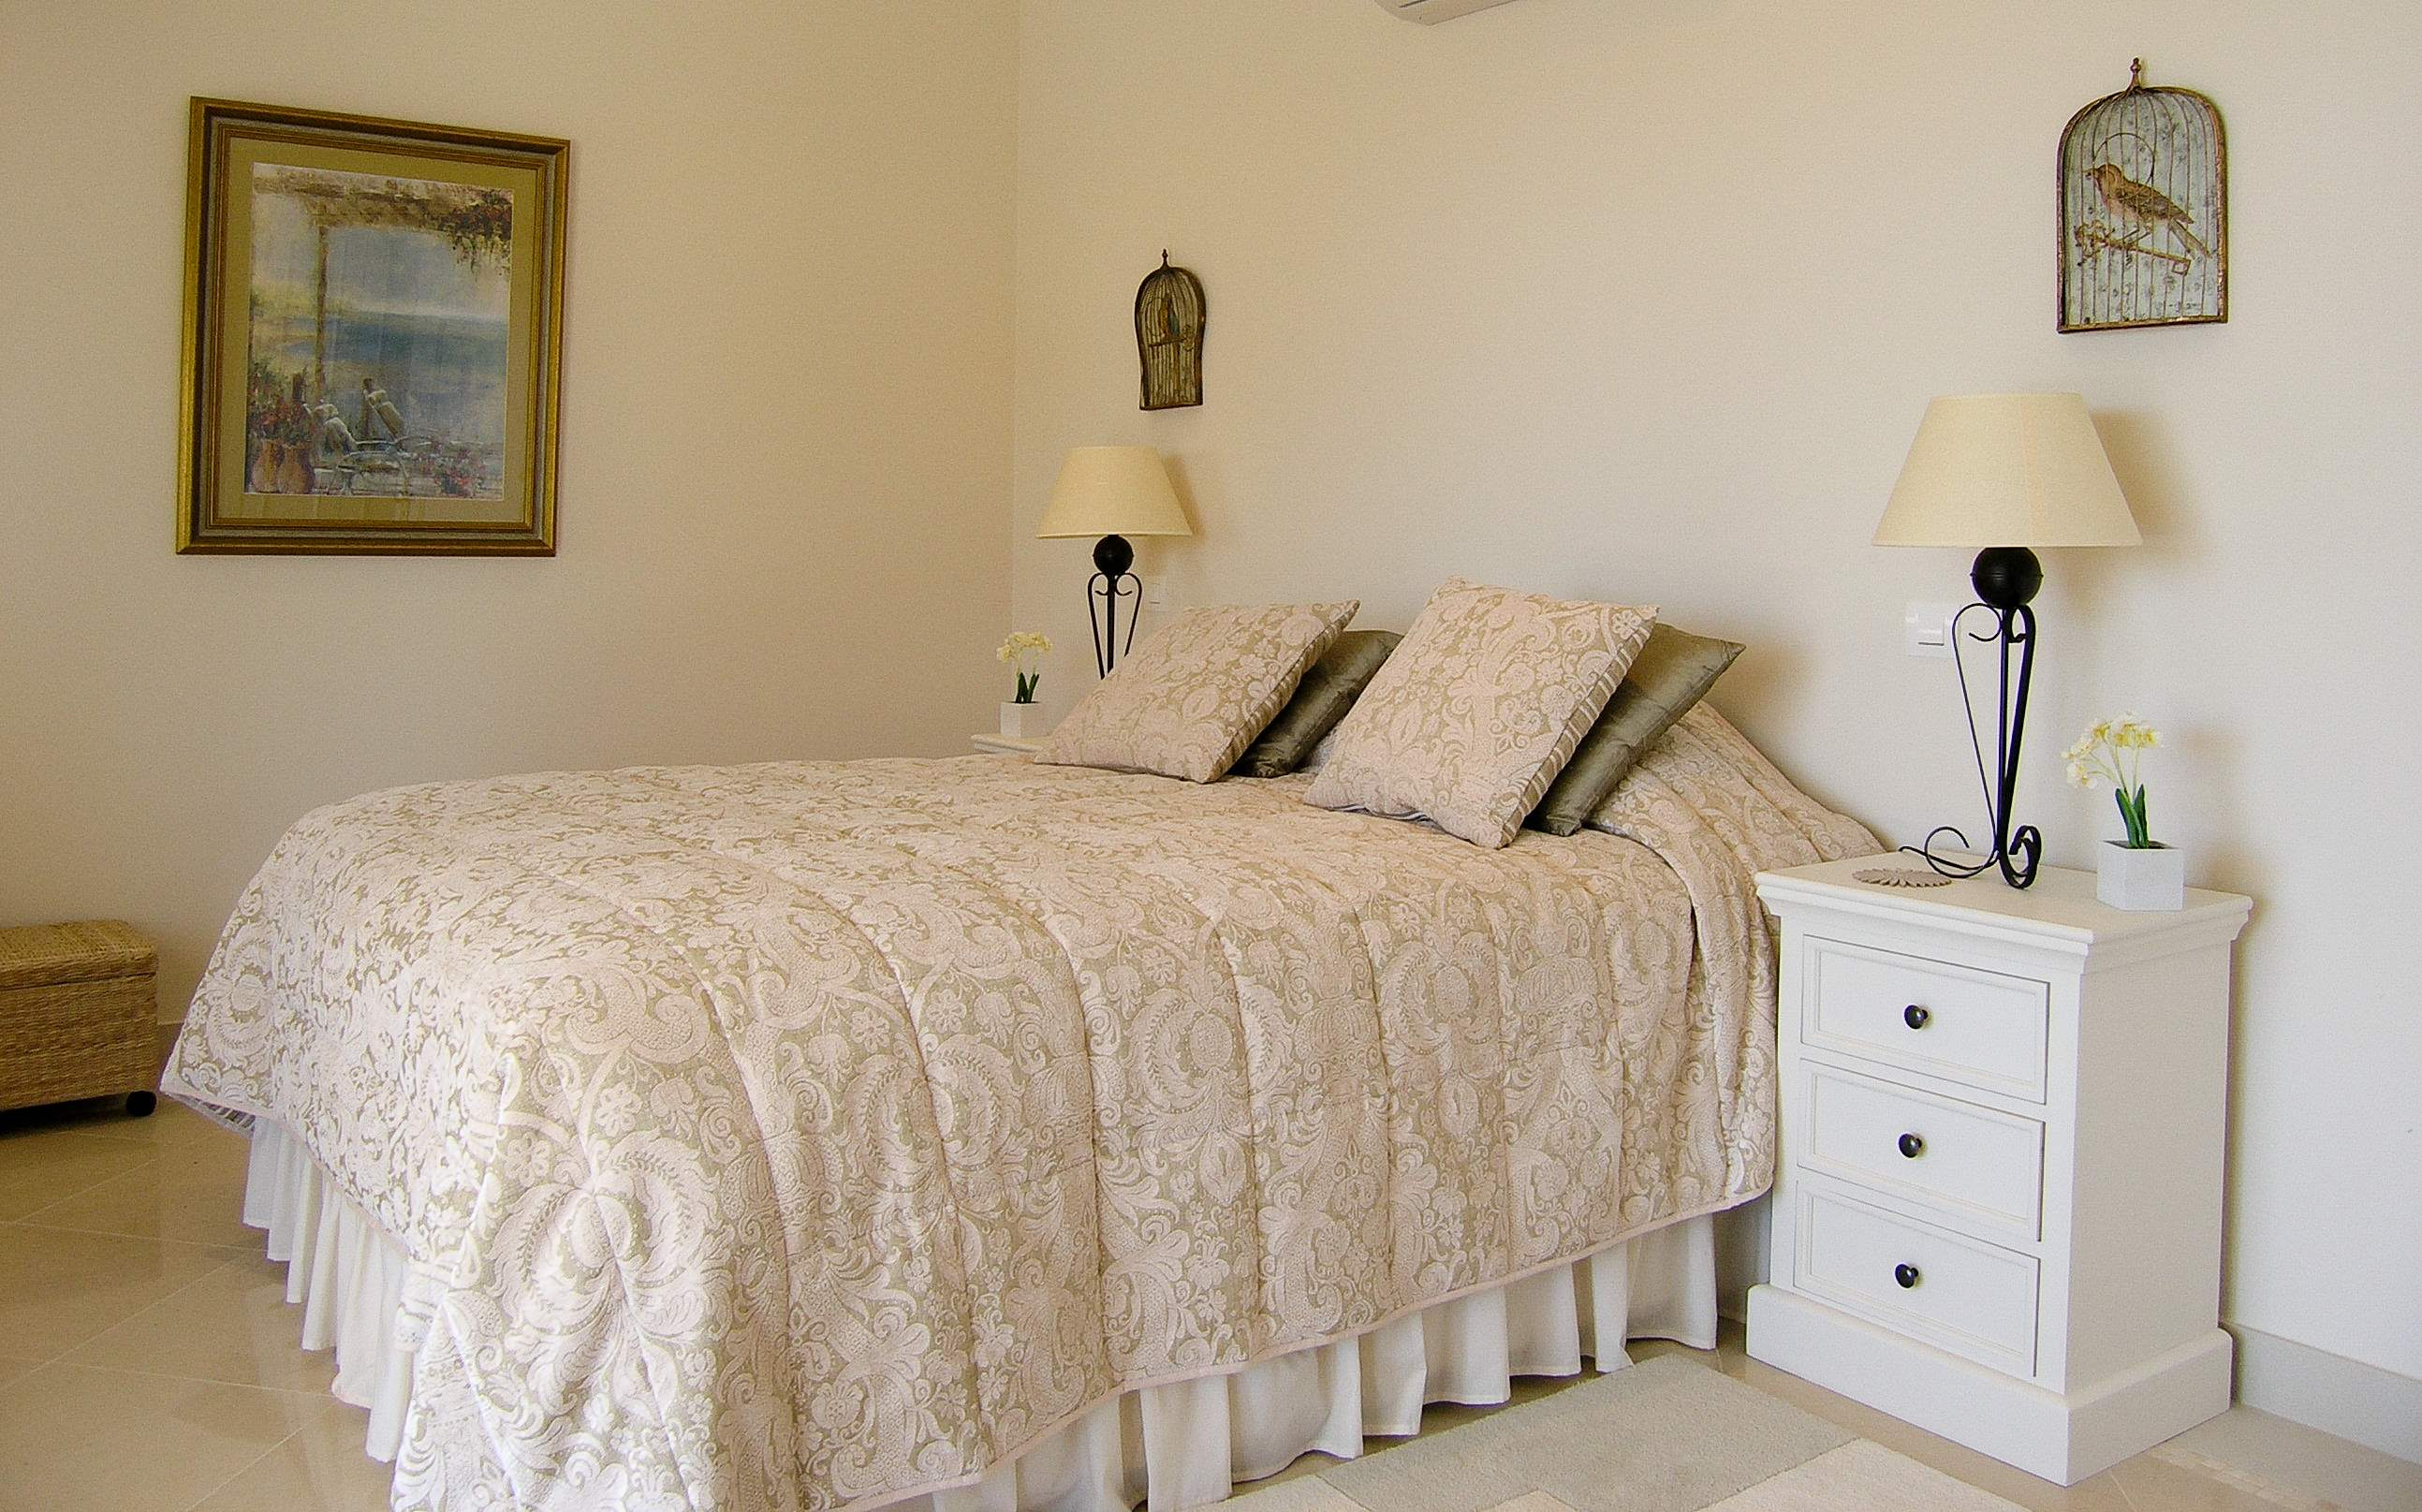 Martinhal Luxury Villa No.44, 3 bedroom villa in Martinhal Sagres, Algarve Photo #14